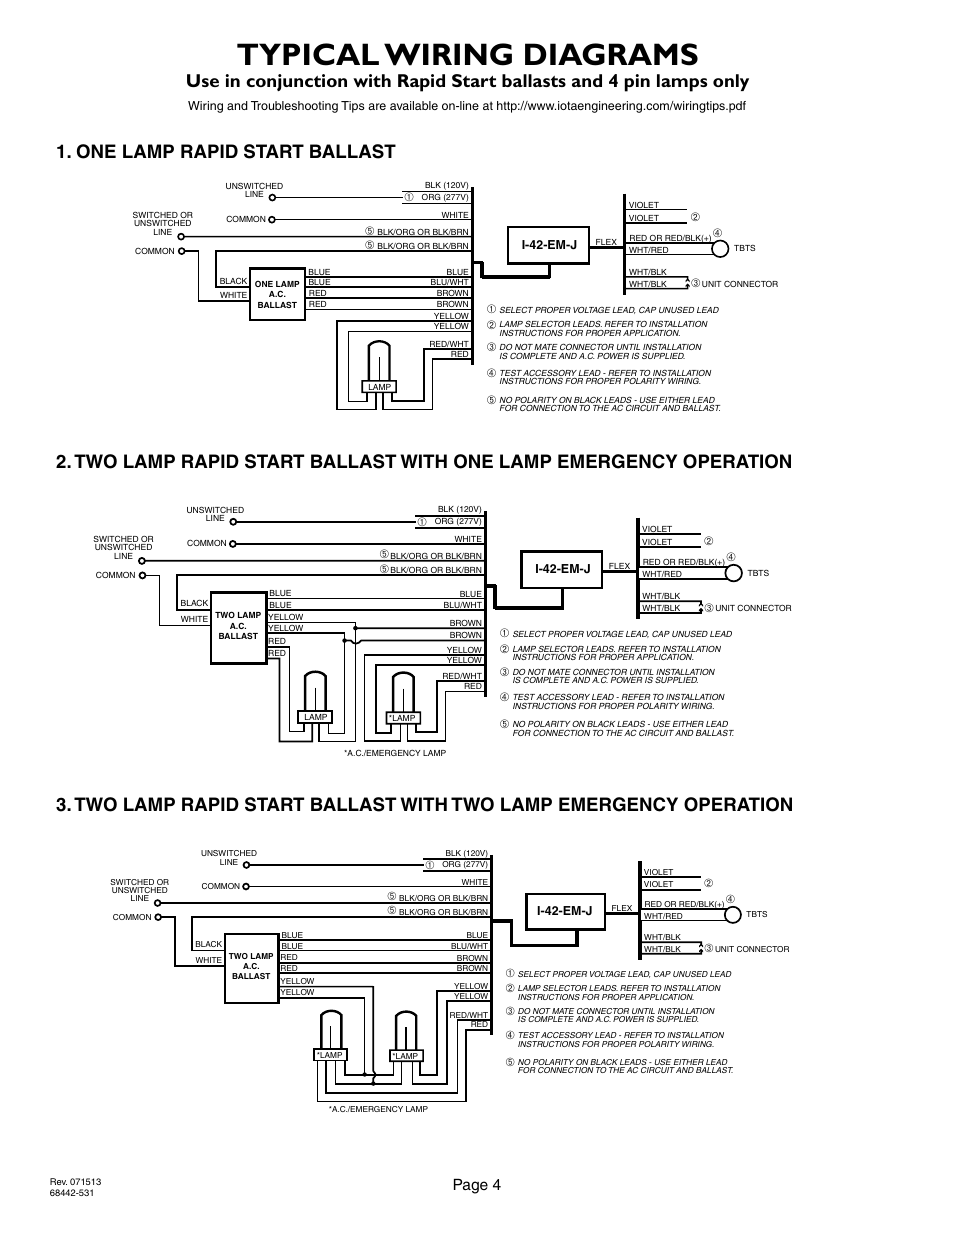 Remarkable Bal700 Emergency Ballast Wiring Diagram Pictures – Lithonia T8 Lighting Wiring Diagram 110 277